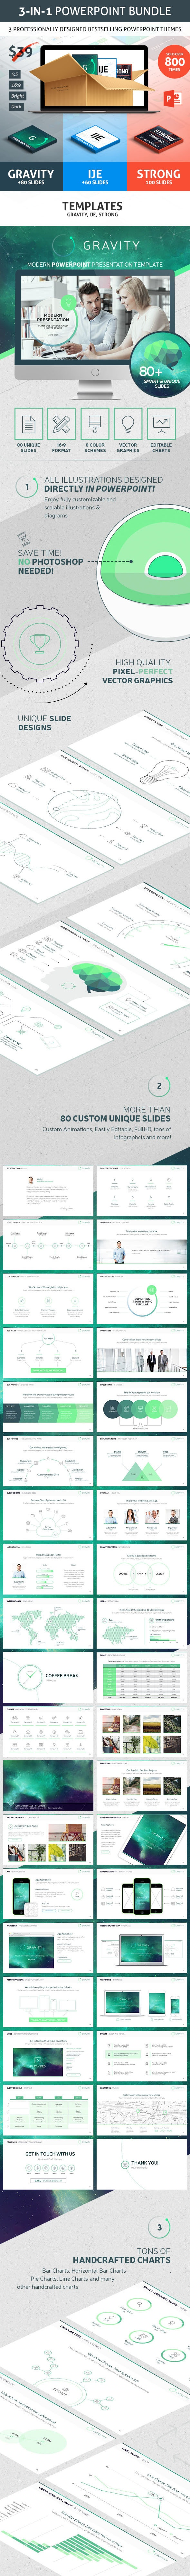 Bestsellers Powerpoint Presentation Bundle - Business PowerPoint Templates